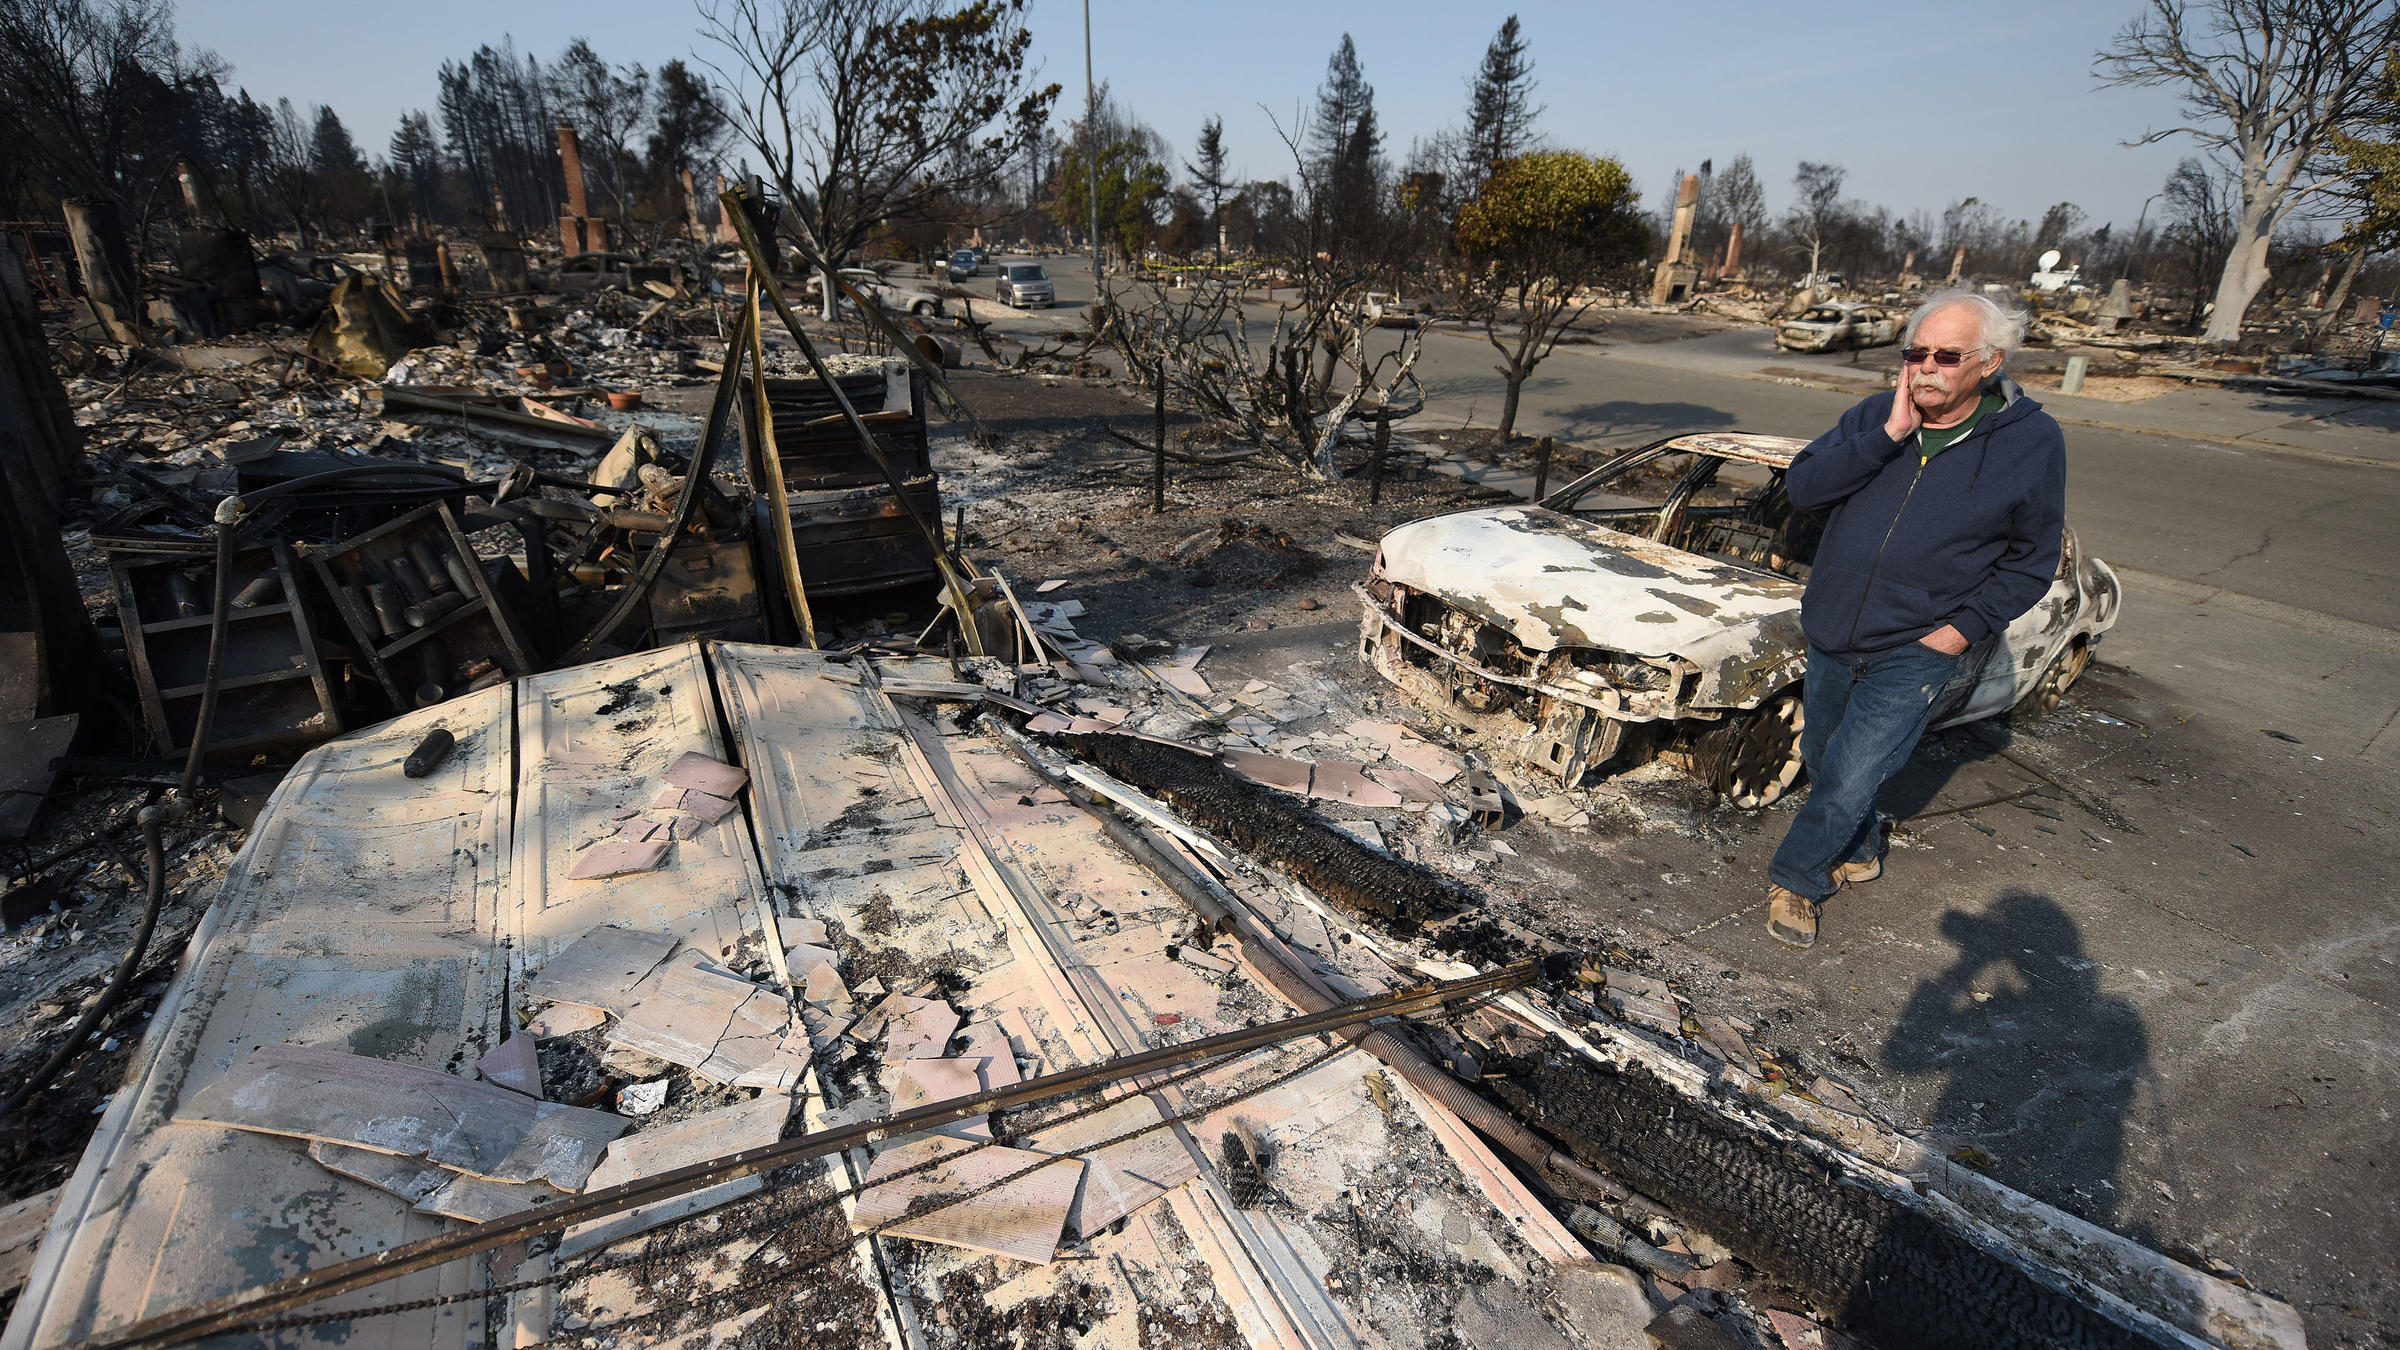 At least 31 dead in California wildfires, hundreds missing